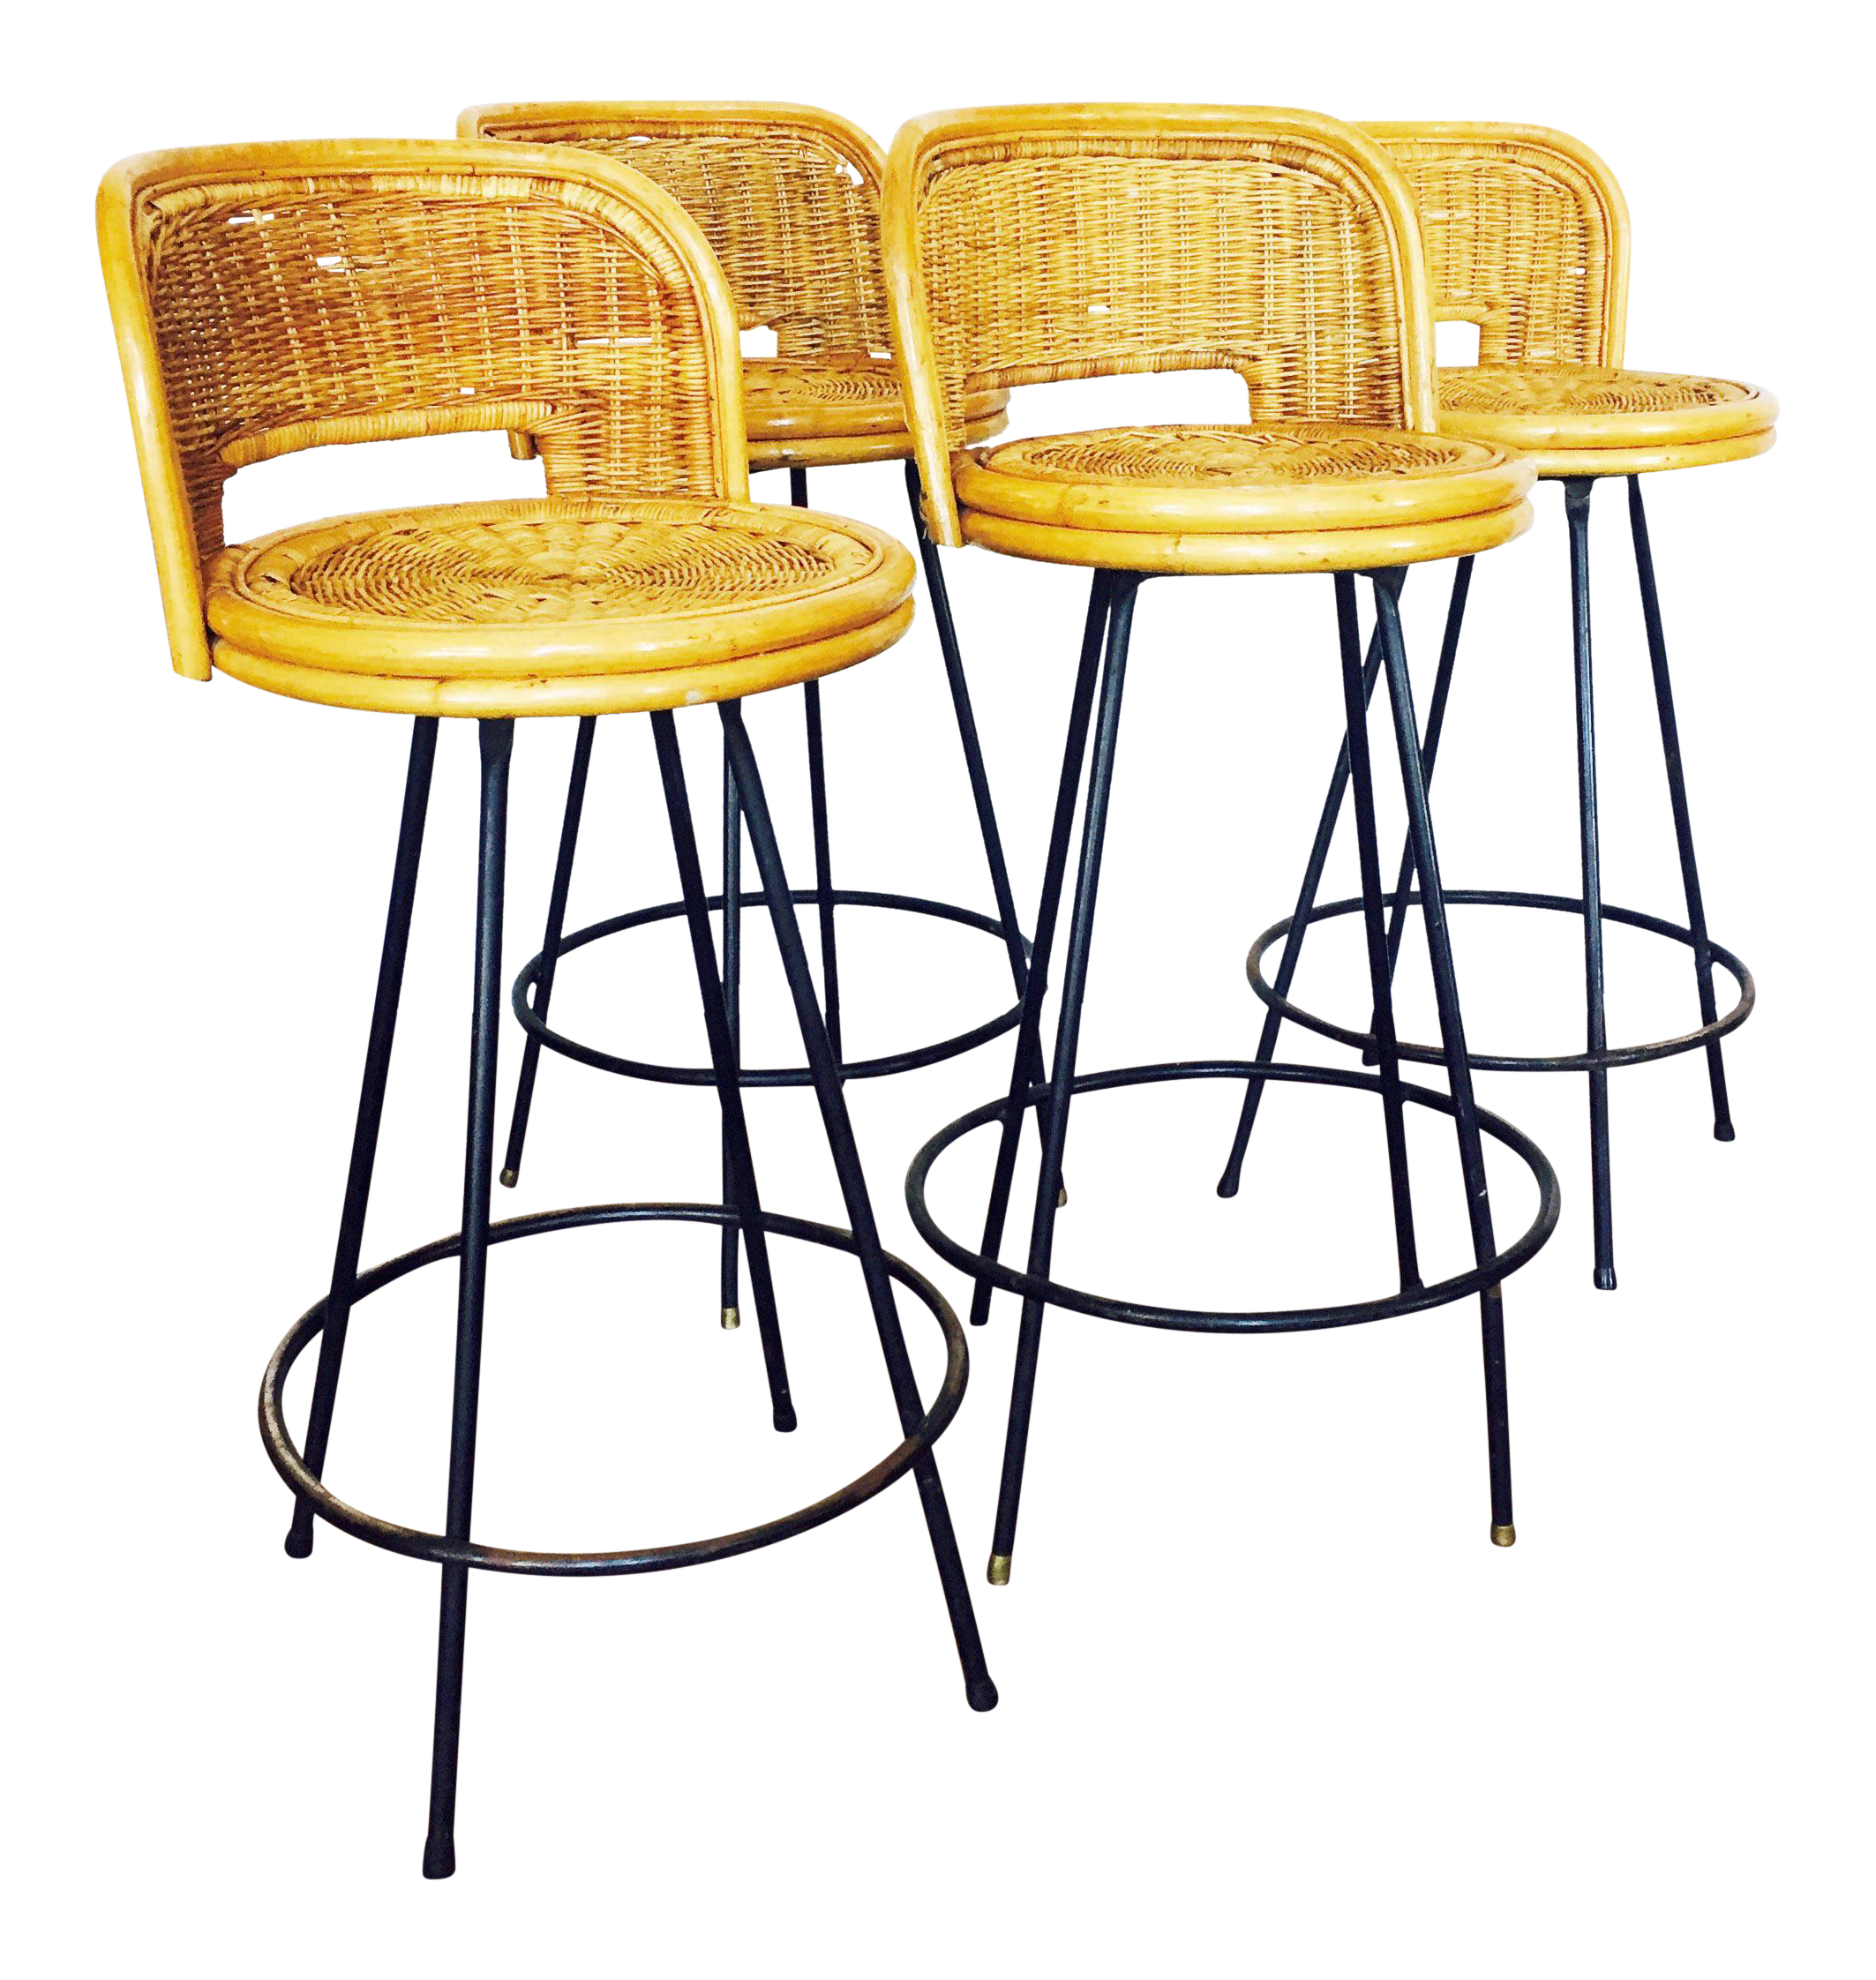 Vintage Rattan amp Wrought Iron Bar Stools Set of 4 Chairish : 5e35c47e 27bf 43c8 a851 e2852f06ee3caspectfitampwidth640ampheight640 from www.chairish.com size 640 x 640 jpeg 59kB